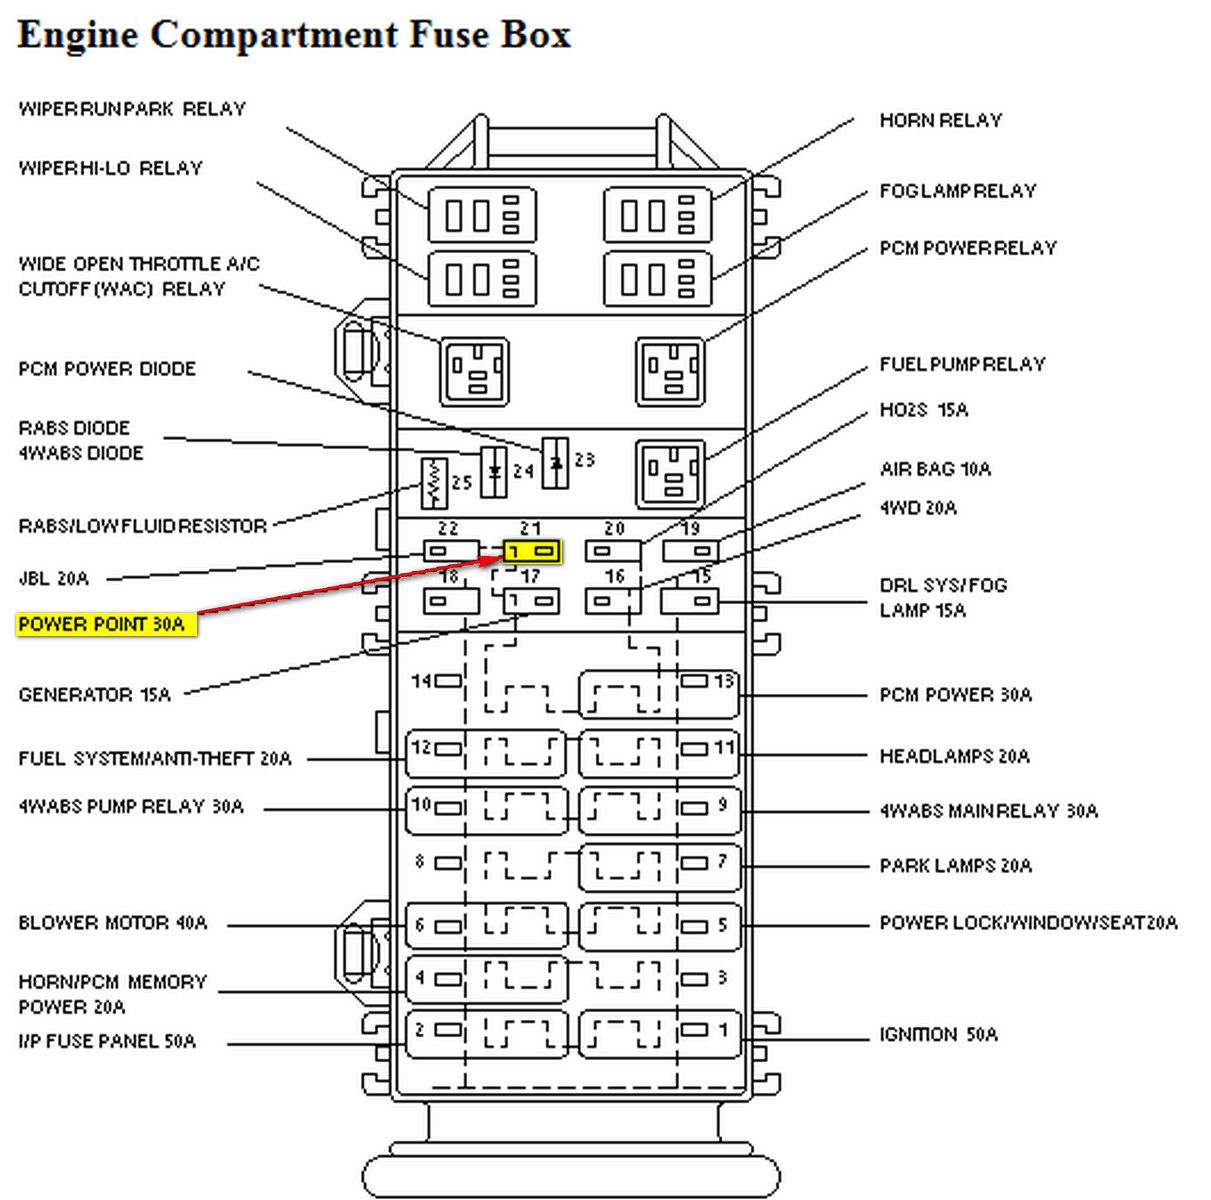 97 Explorer Fuse Box - Wiring Diagram on 2003 sable fuse box diagram, 1999 sable fuse box diagram, 2001 sable fuse box diagram,